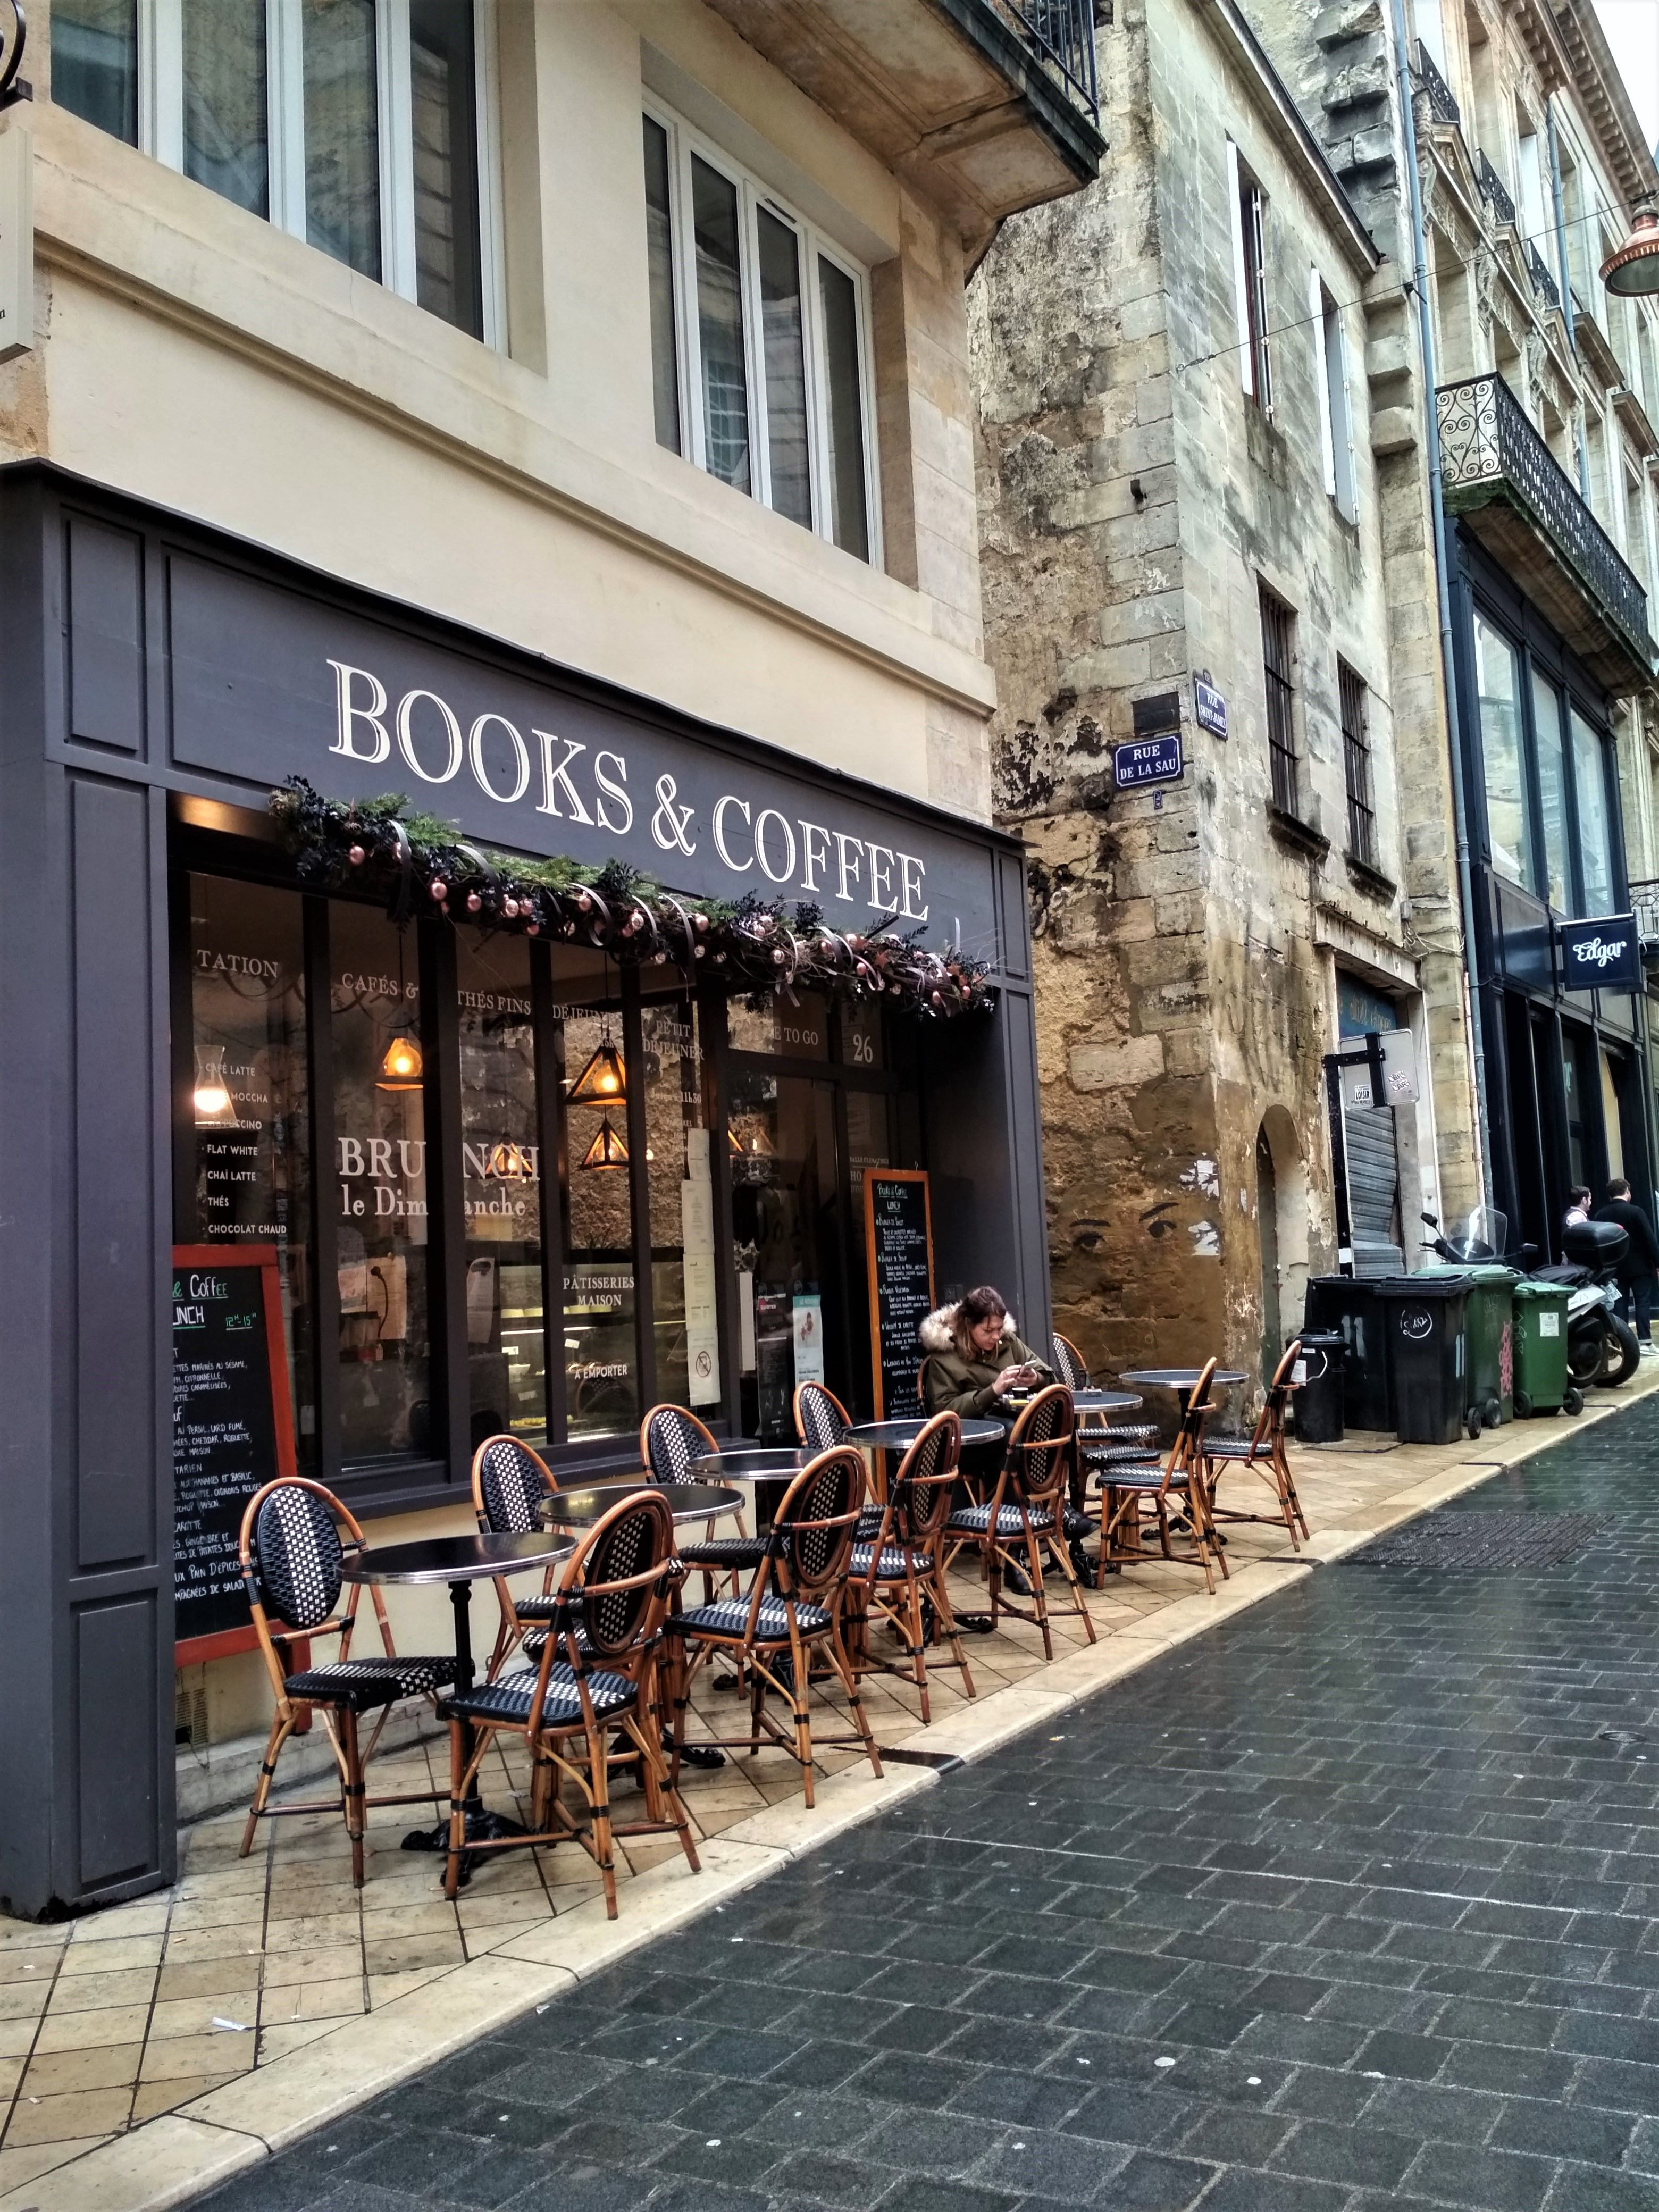 Books & Coffee, Café, Bordeaux